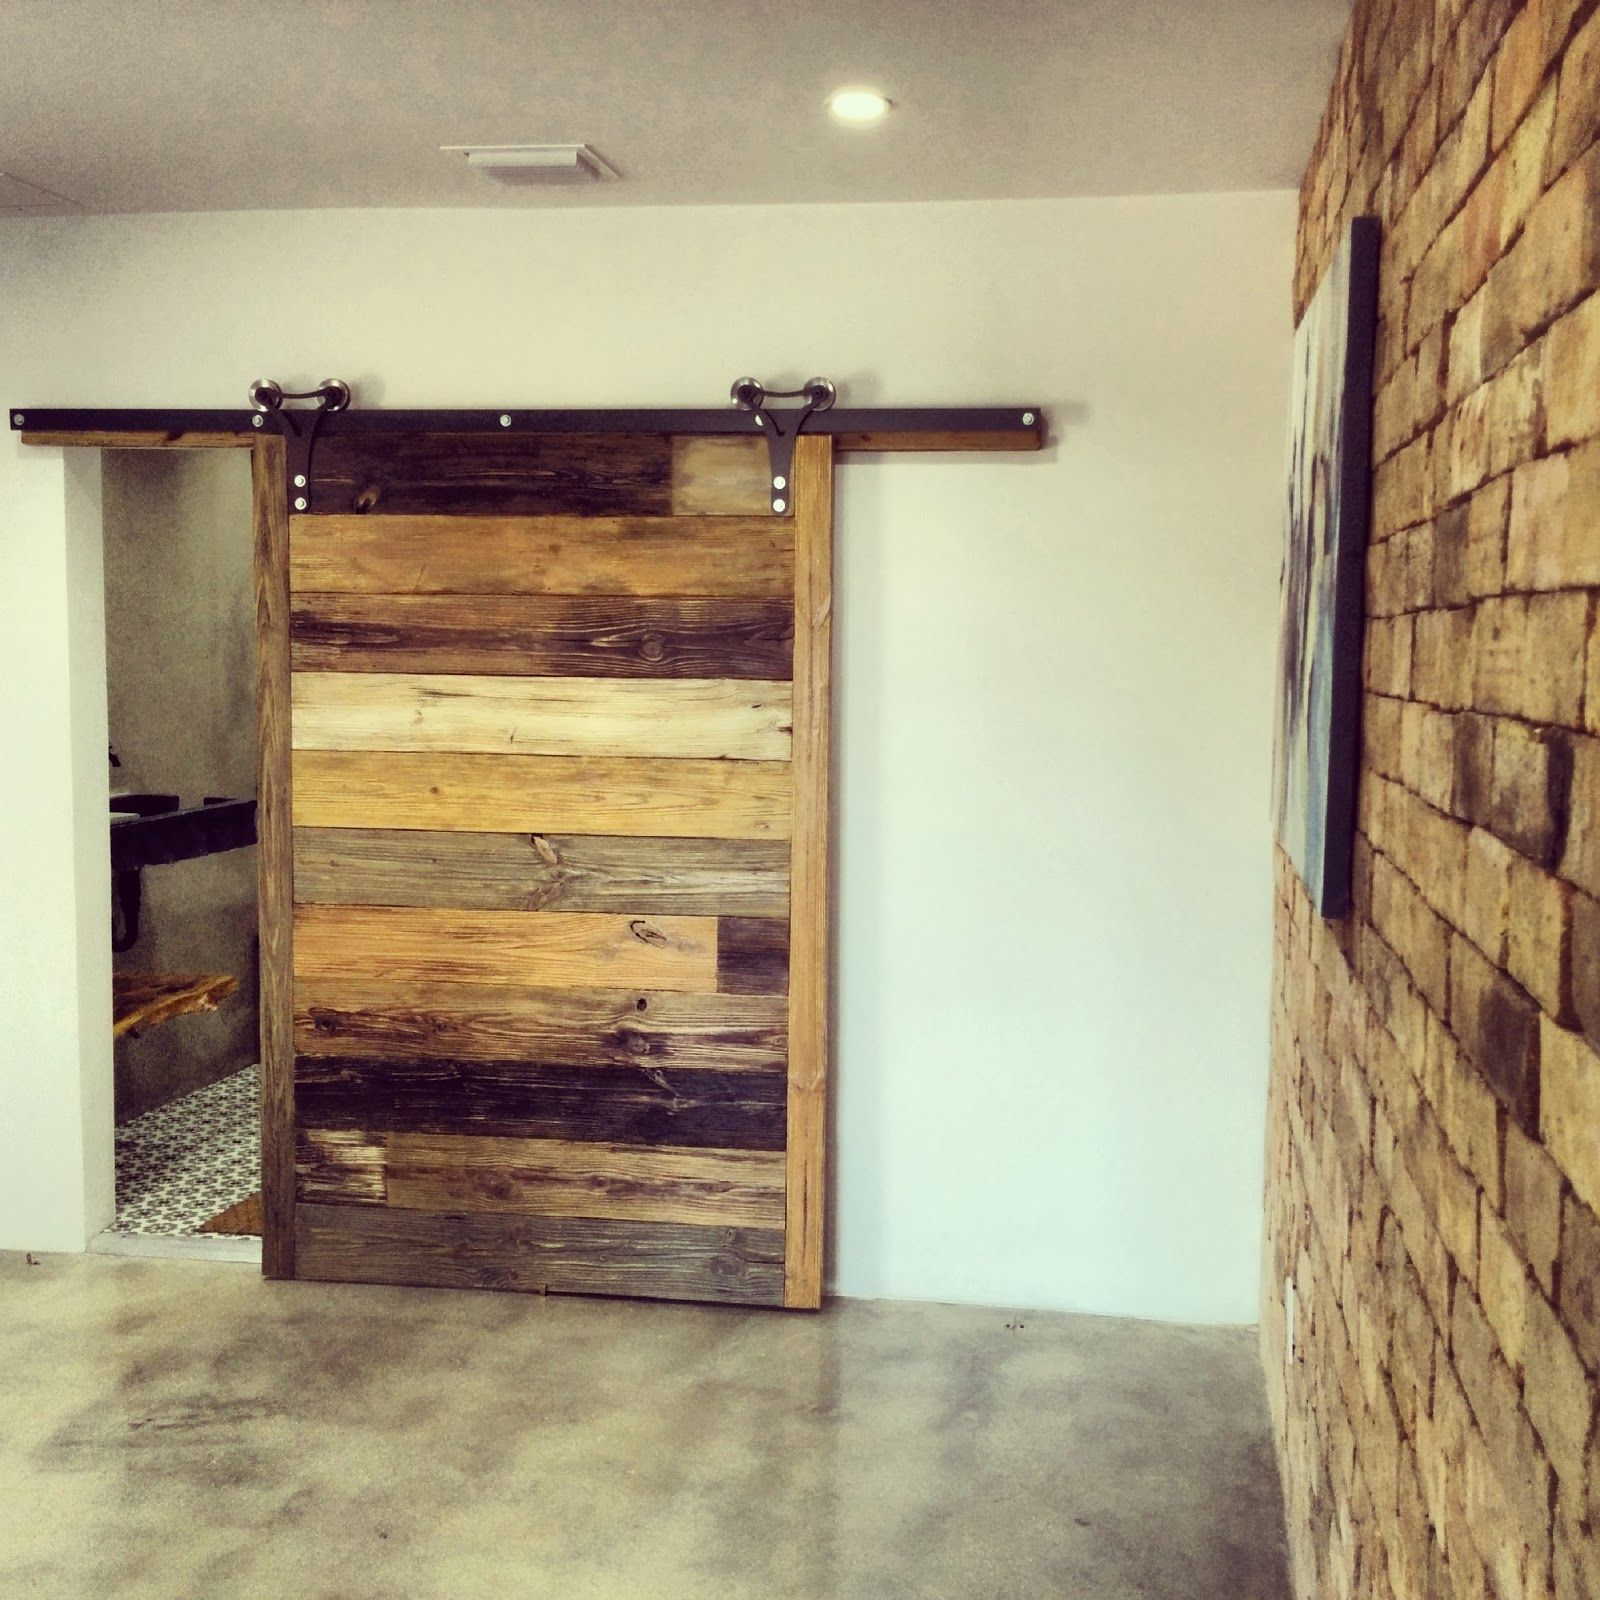 Sliding Barn Door Design For More Interior Barn Door Treatments